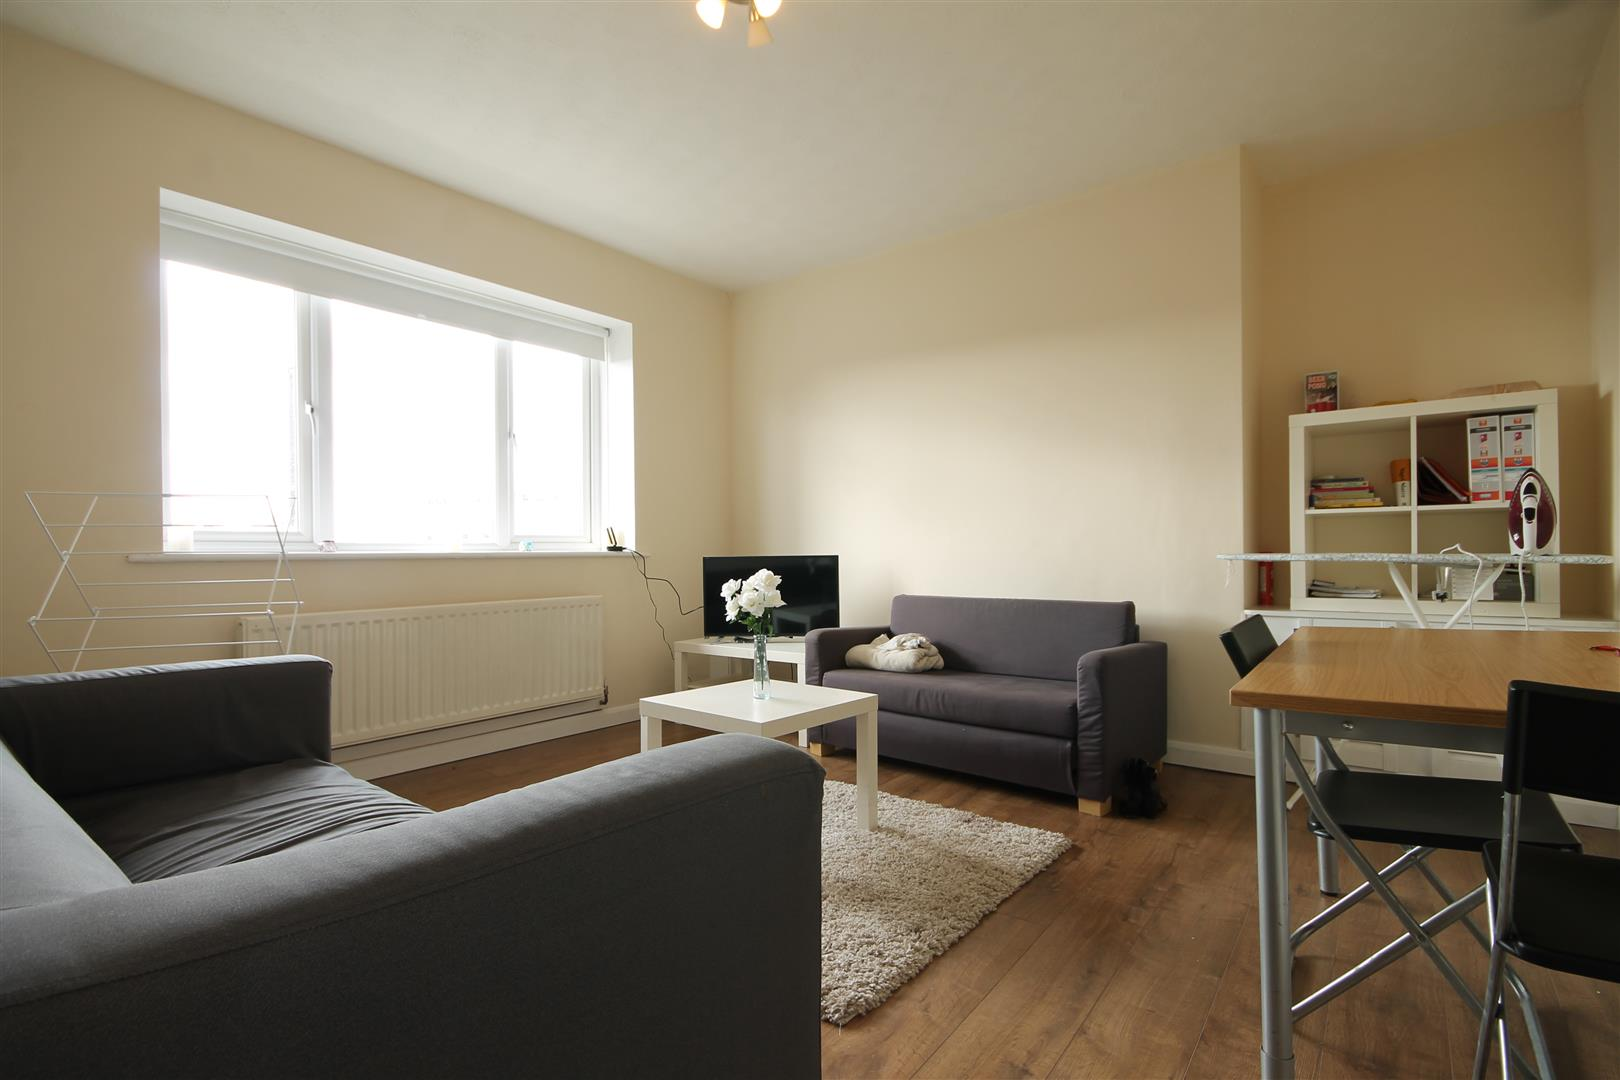 A City Road Newcastle Upon Tyne, 3 Bedrooms  Apartment ,To Let